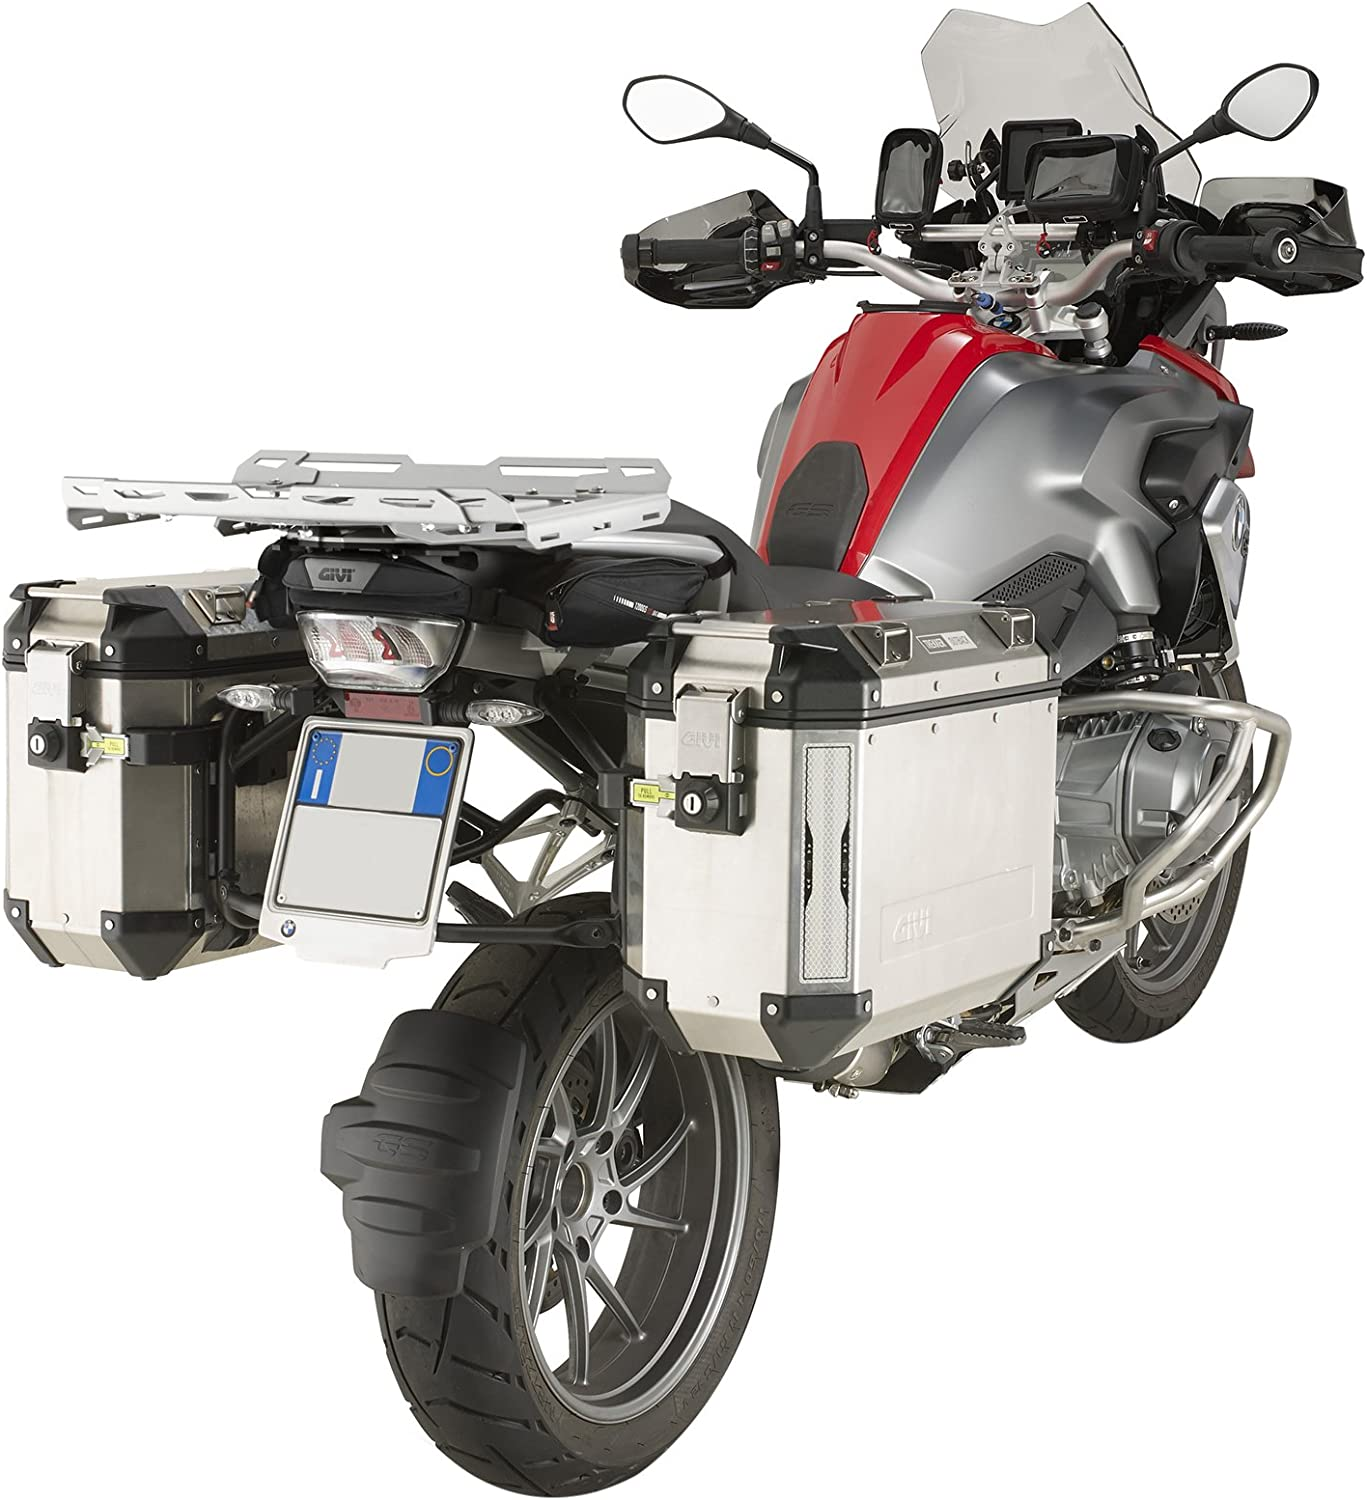 Givi EH5108 Hand Guard Extensions For BMW R1200GS//GSA Watercooled F800GS Adventure